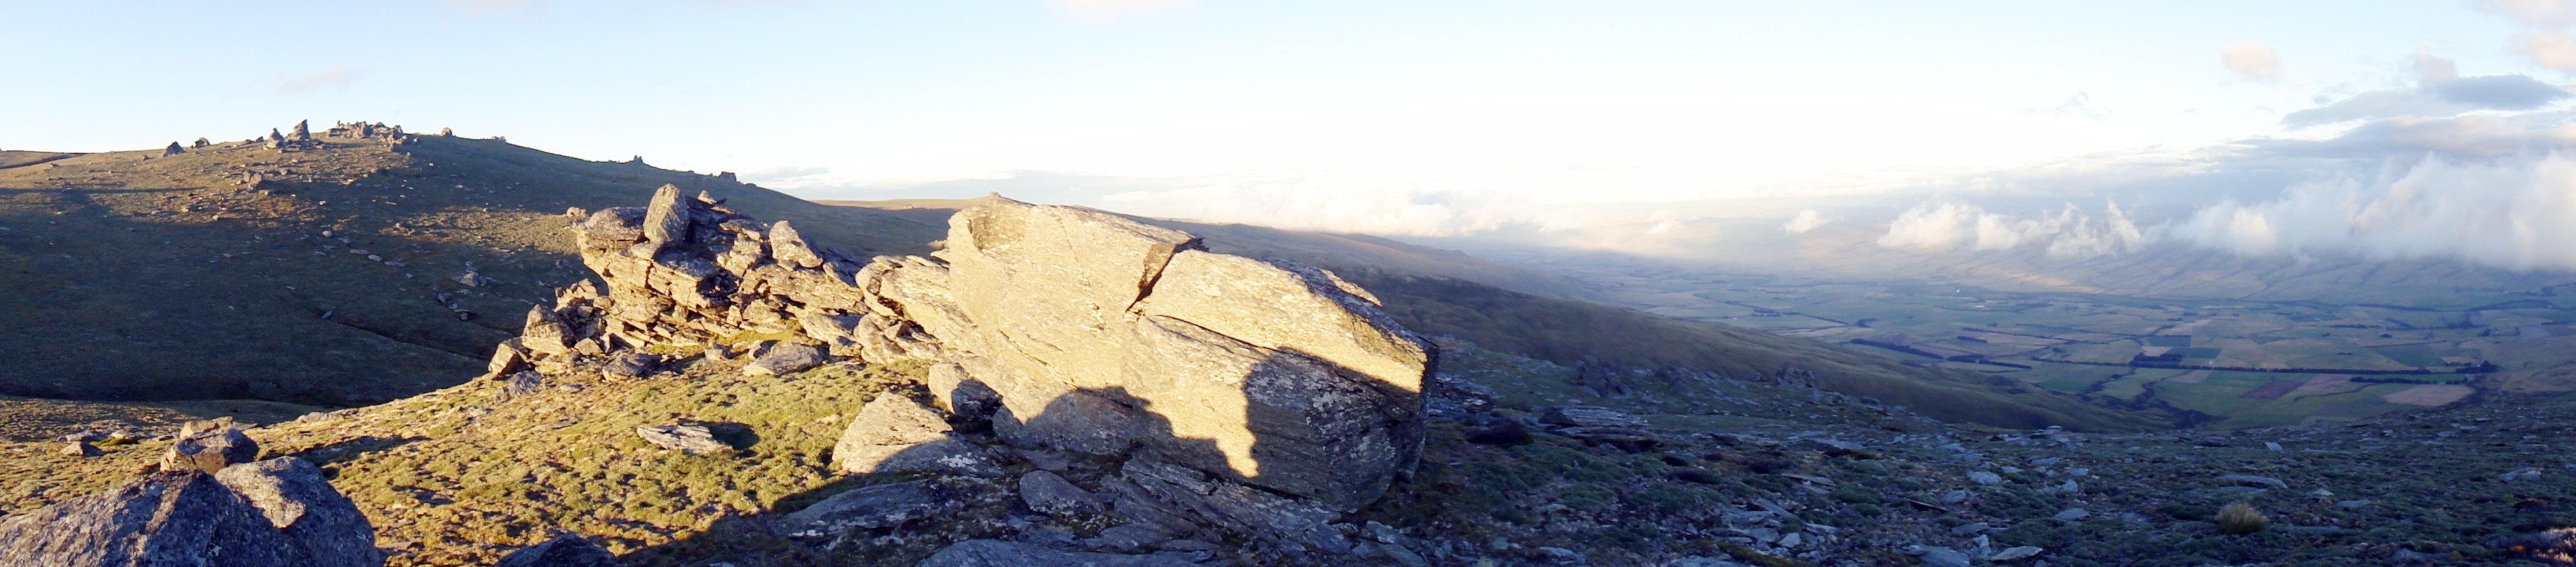 The view from the top of the Rock and Pillar Range, near Big Hut. PHOTOS: TOM MCKINLAY